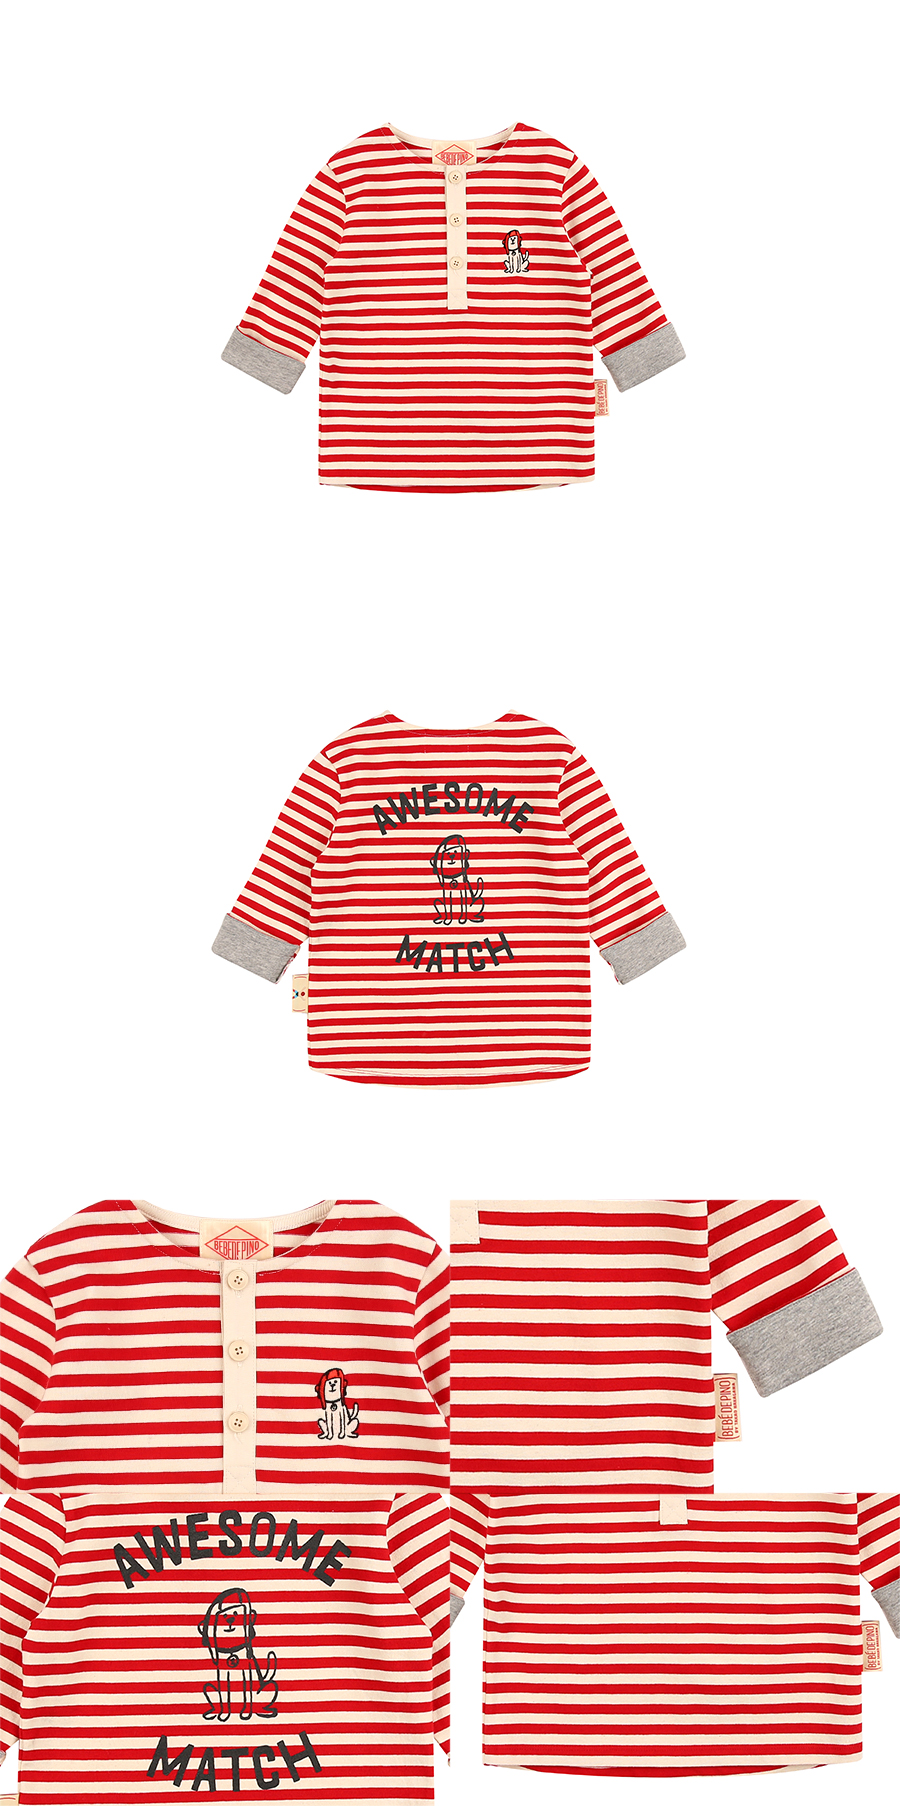 Puppy baby stripe henley neck long sleeve tee 상세 이미지